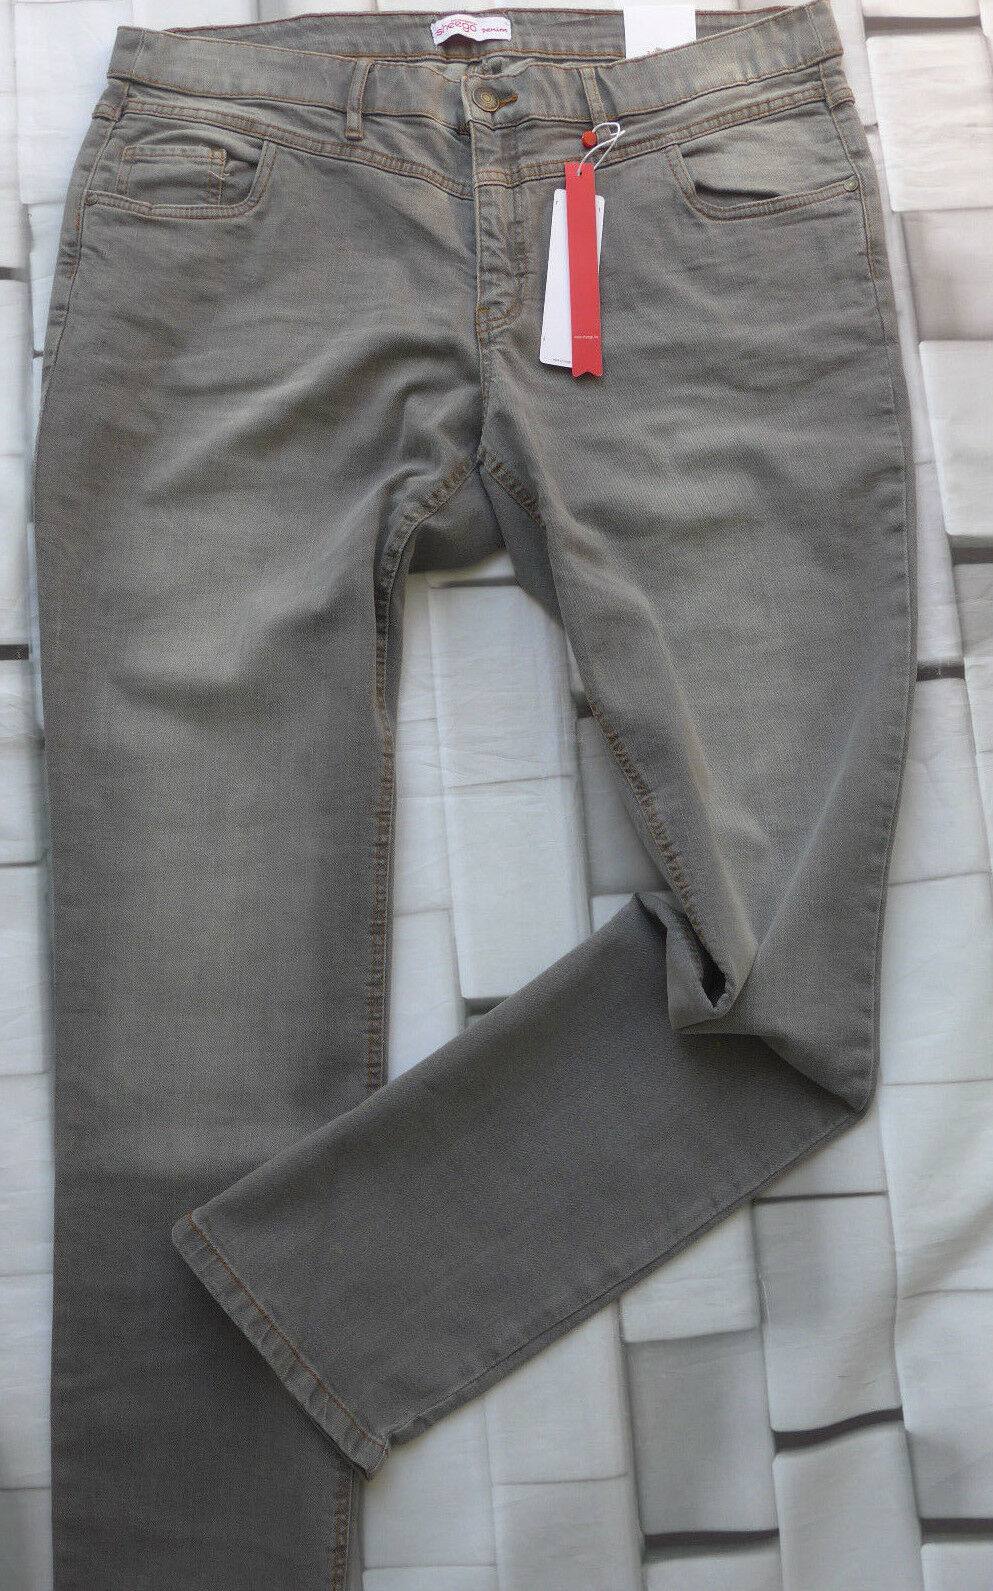 Sheego Stretch Jeans Size 44 - 58 Lana Grey Long short Normal Size (075) New